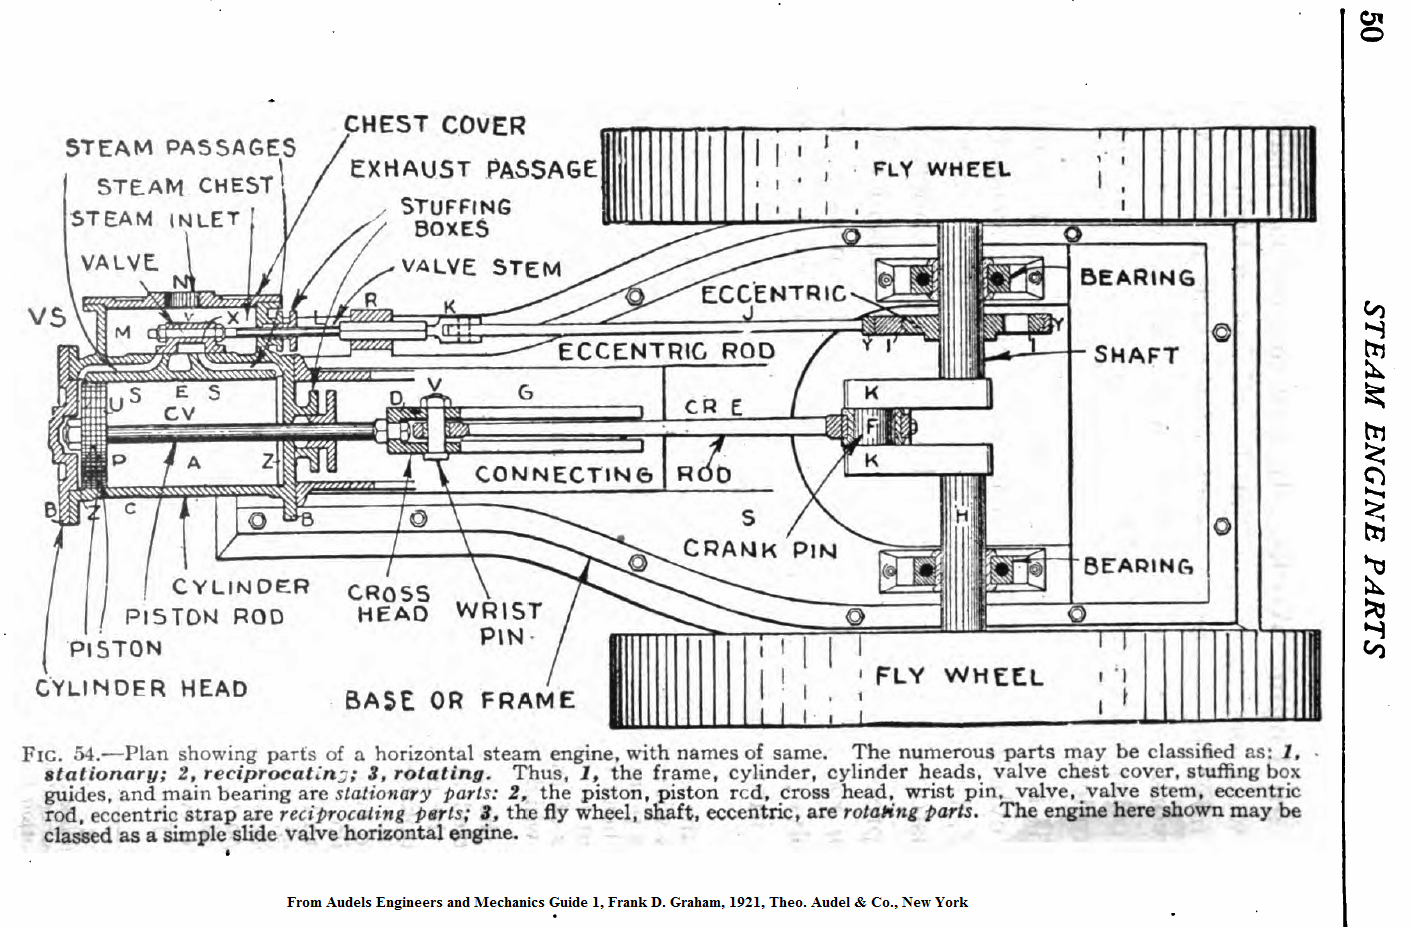 Mike Anderson Pico Canyon Engine Diagram Of Steam In 2012 Bought A Farrar Trefts That Was Salvaged From He Plans To Restore His Came Bob Hughes